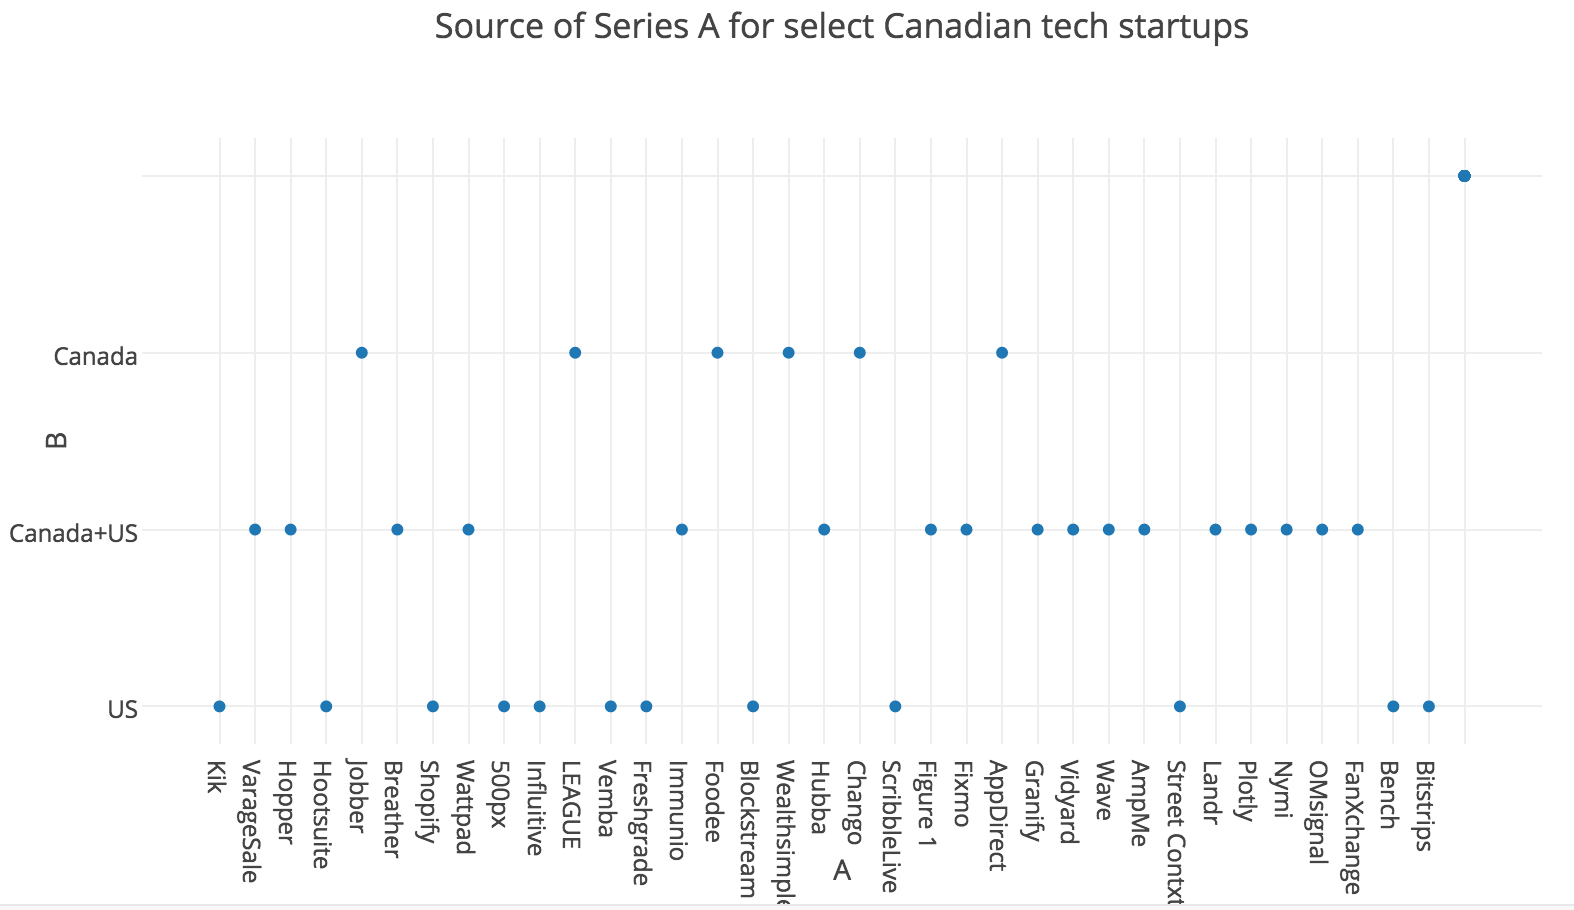 Analysis of source of Seed vs Series A funding of Canadian